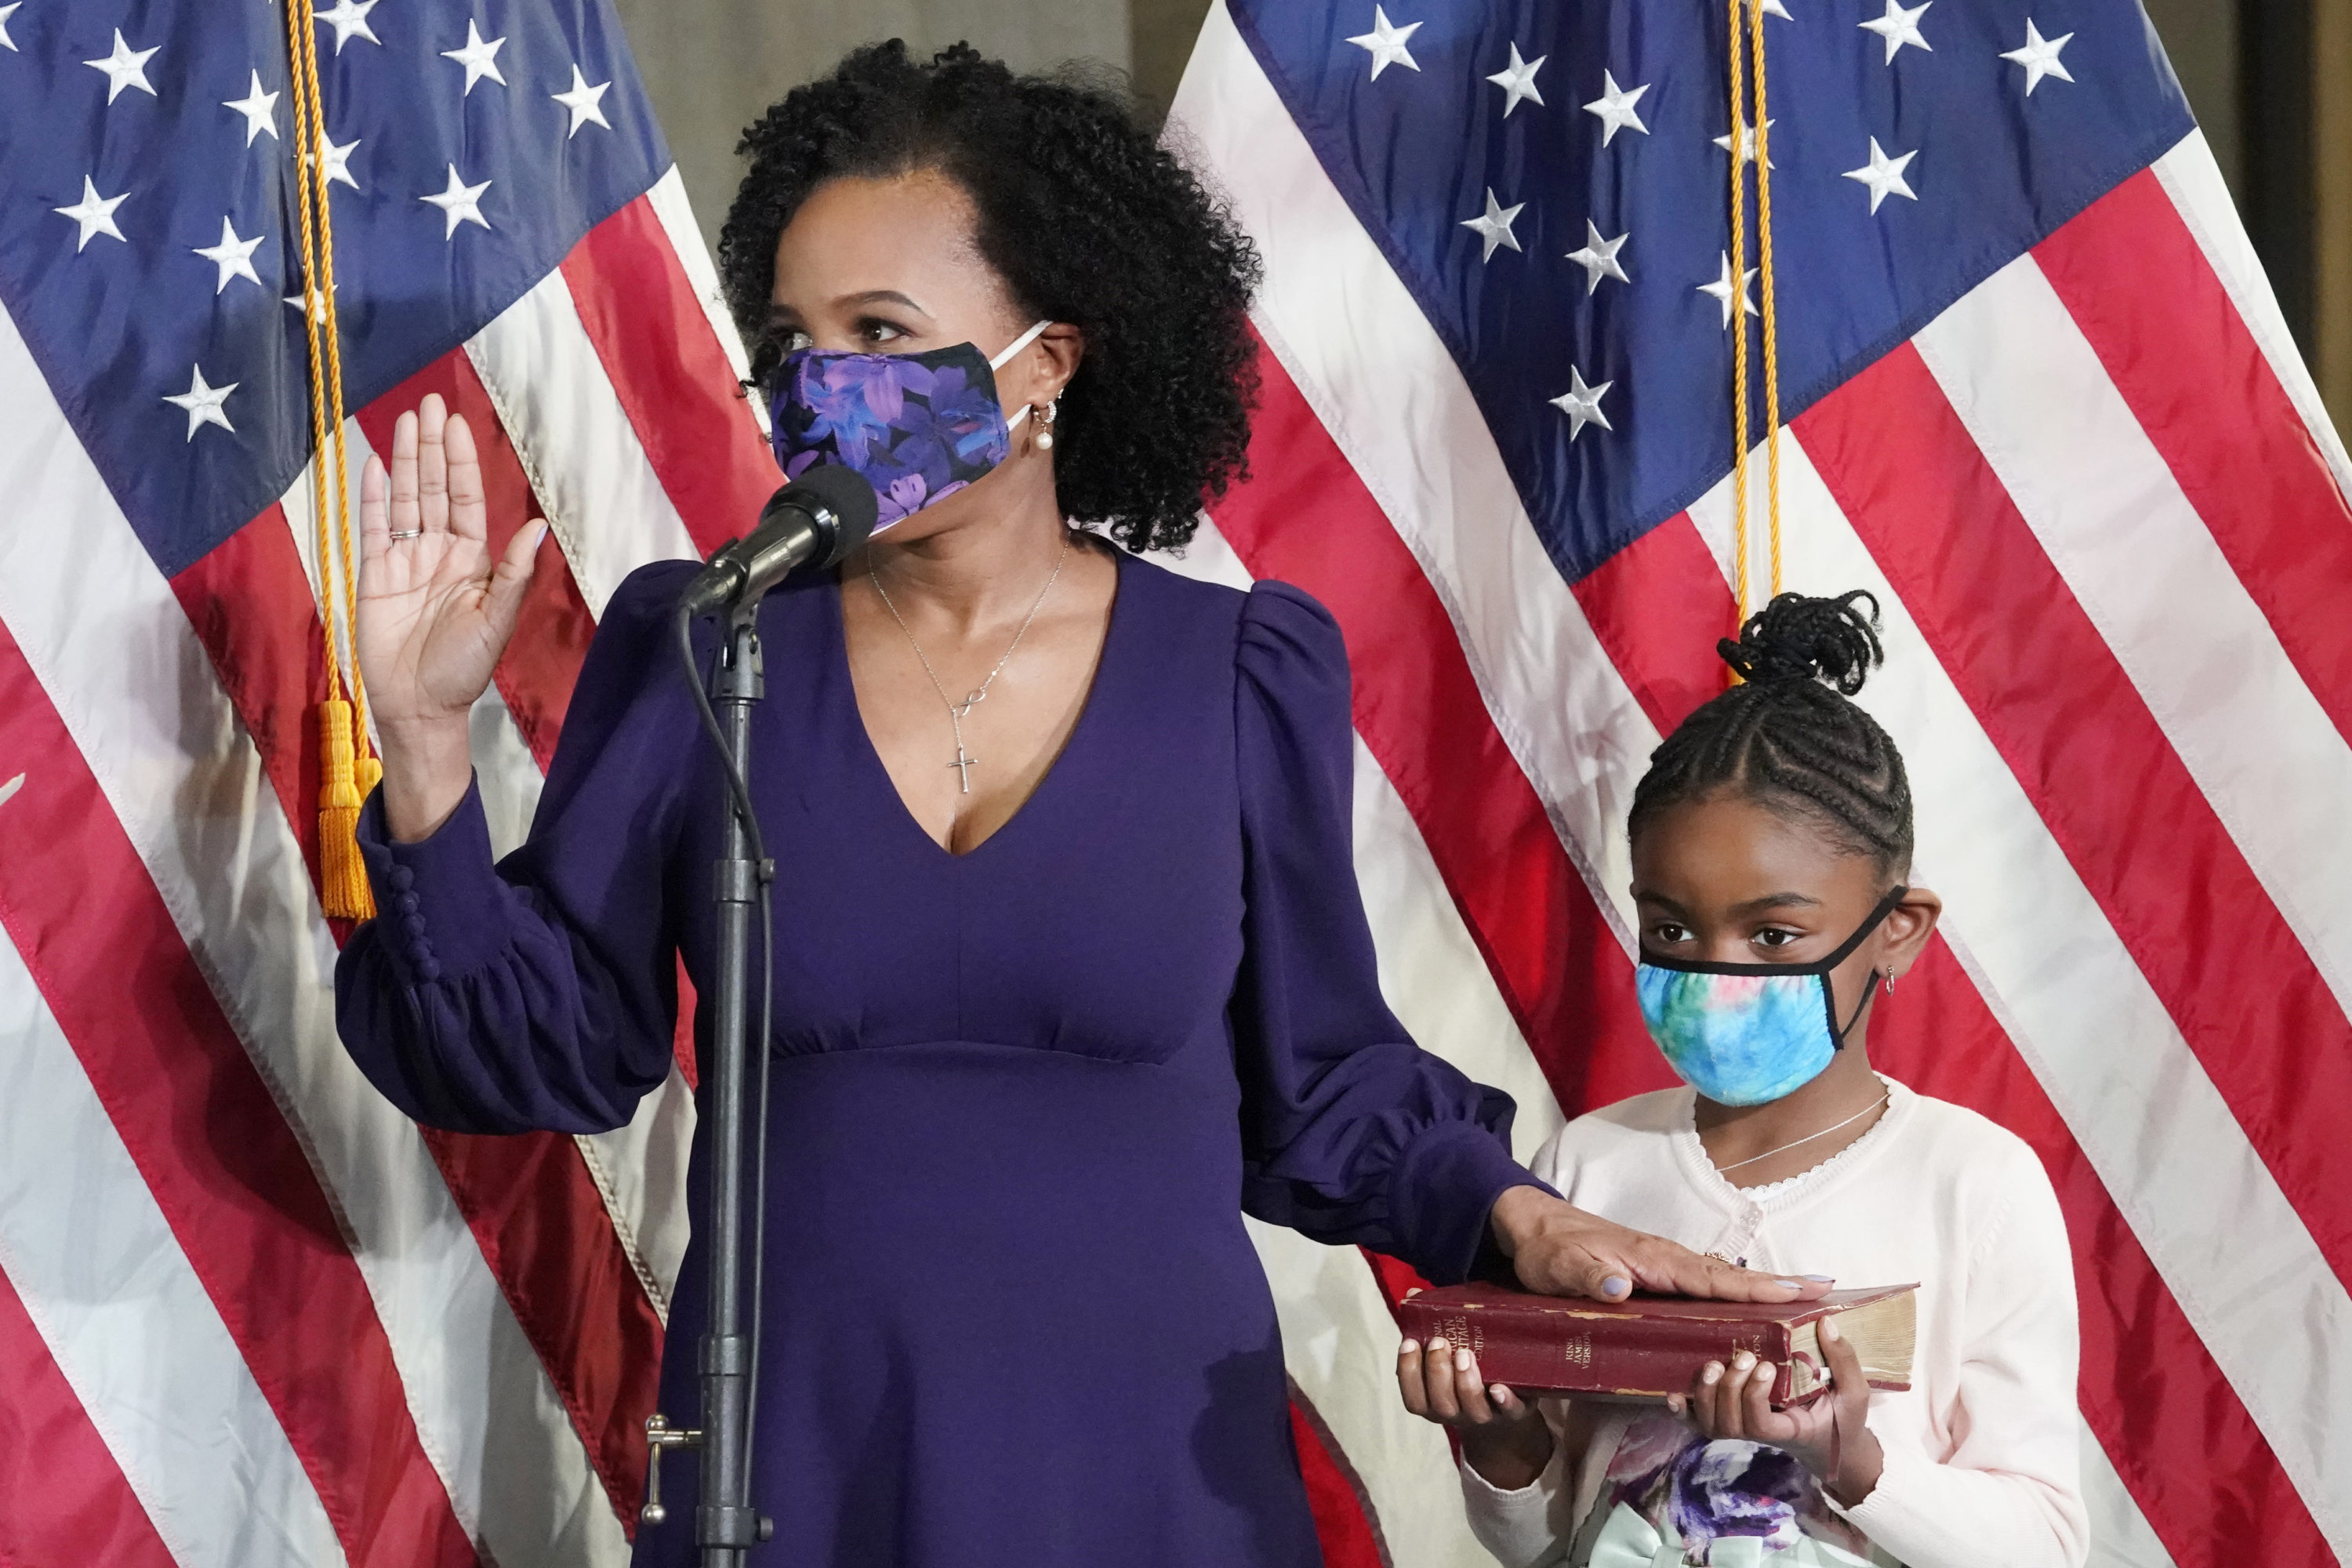 Former Boston City Council President Kim Janey, 55, is sworn in as Boston's new mayor at City Hall while her granddaughter, Rosie, holds a Bible, Wednesday, March 24, 2021, in Boston.(Elise Amendola/AP)